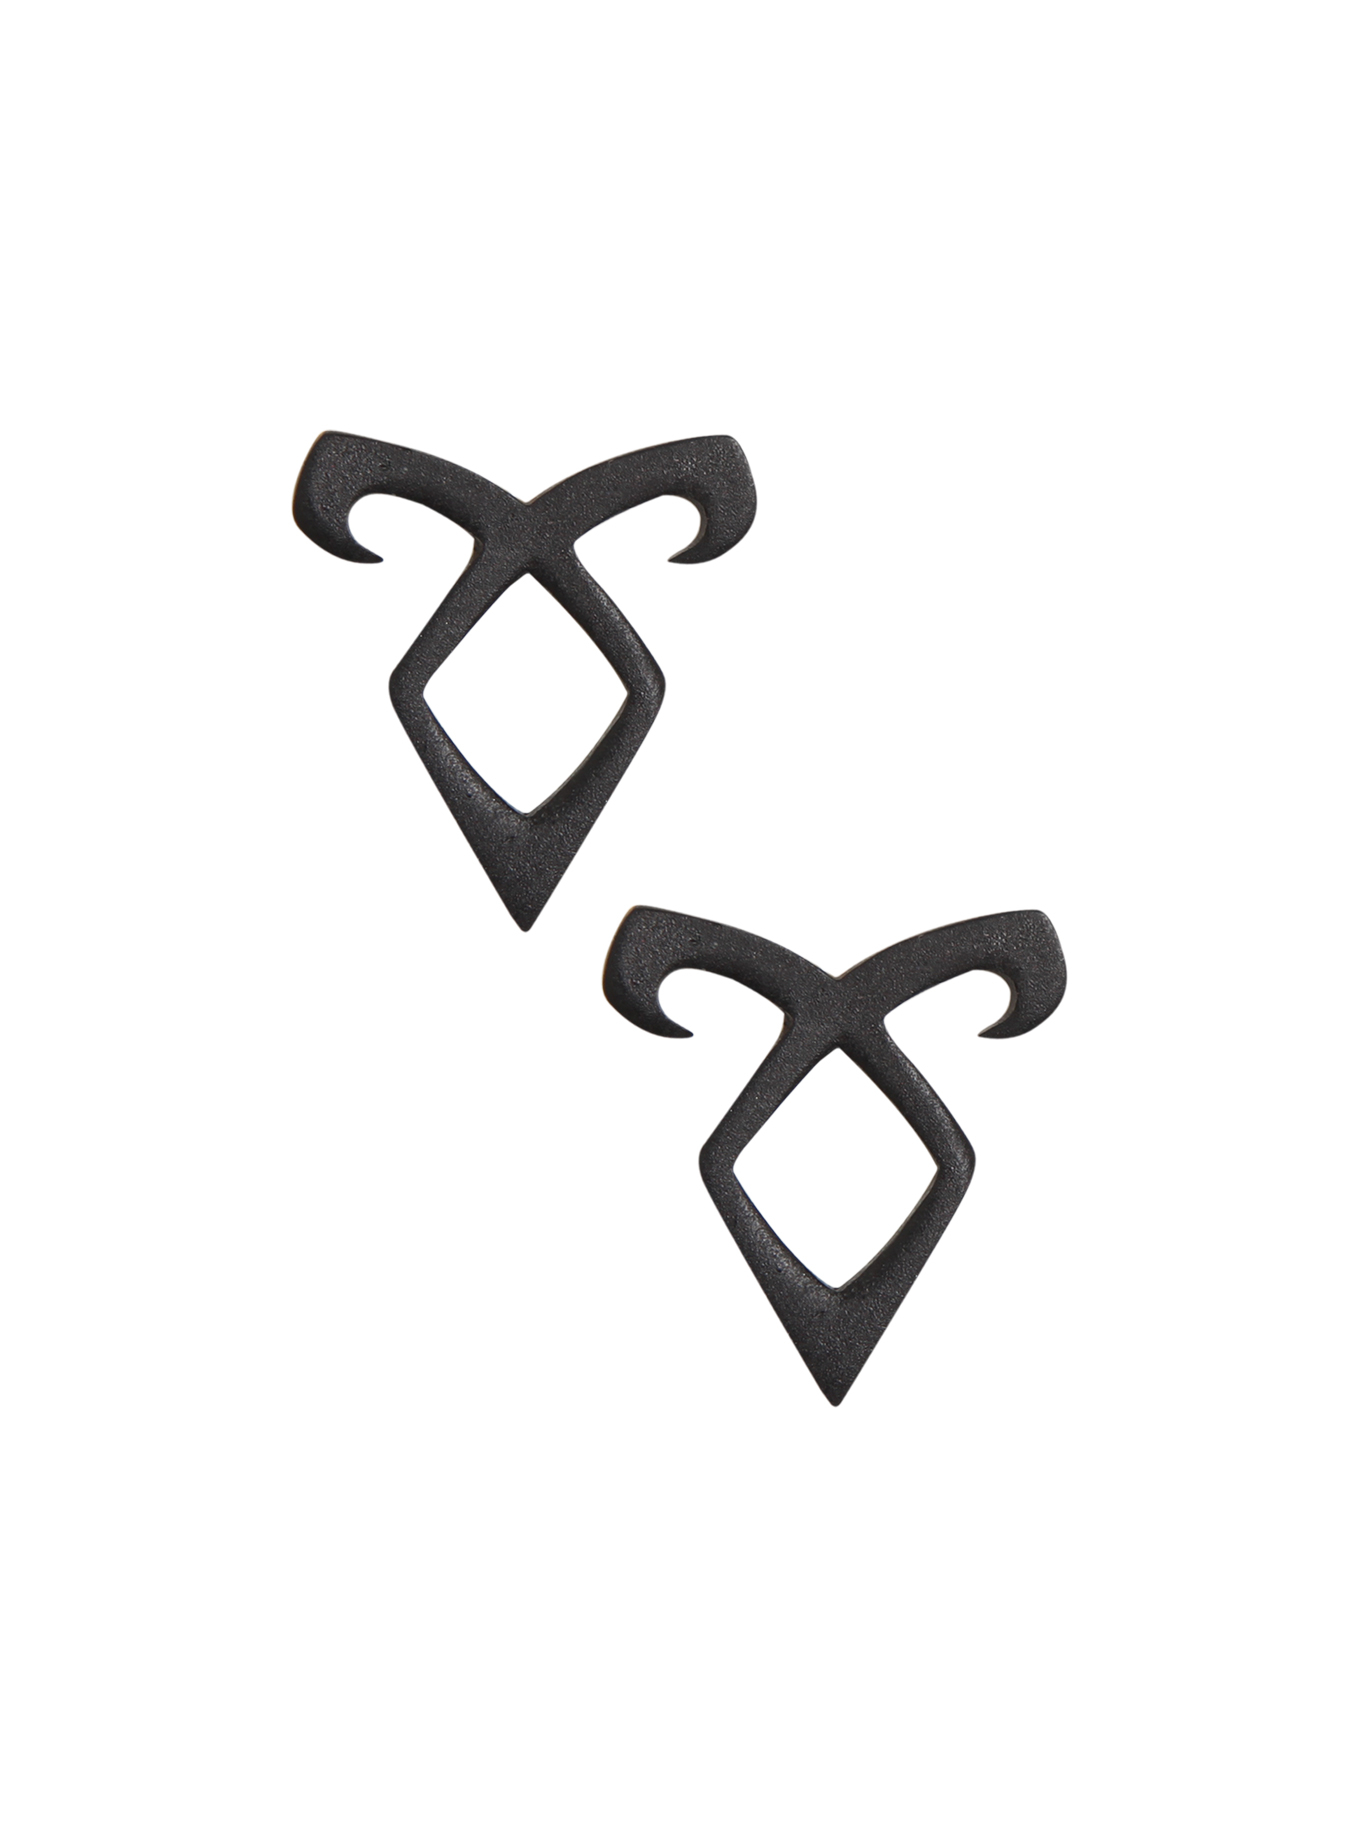 Angelic Rune Mortal Instruments Tattoo The Mortal